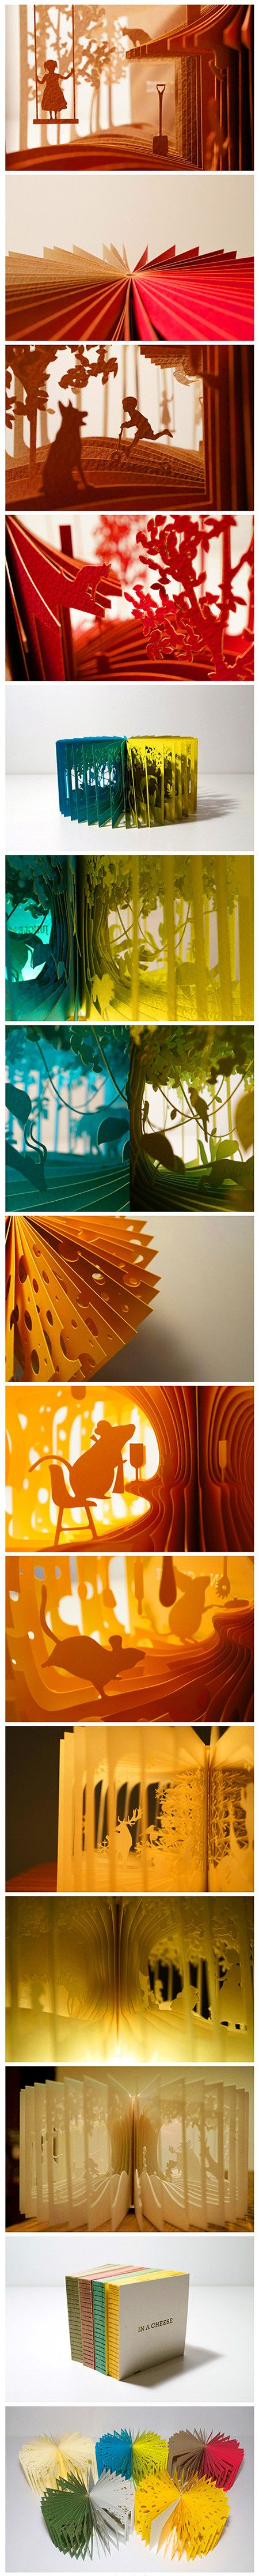 In order to express a single scene of a story in a three dimensional way, Japanese artist and architect Yusuke Oono created this imaginative series of 360 degree books. Using 40 pages, Oono assembles scenes from stories like The Jungle Book and Snow White with elaborate layers of silhouettes cut from paper.